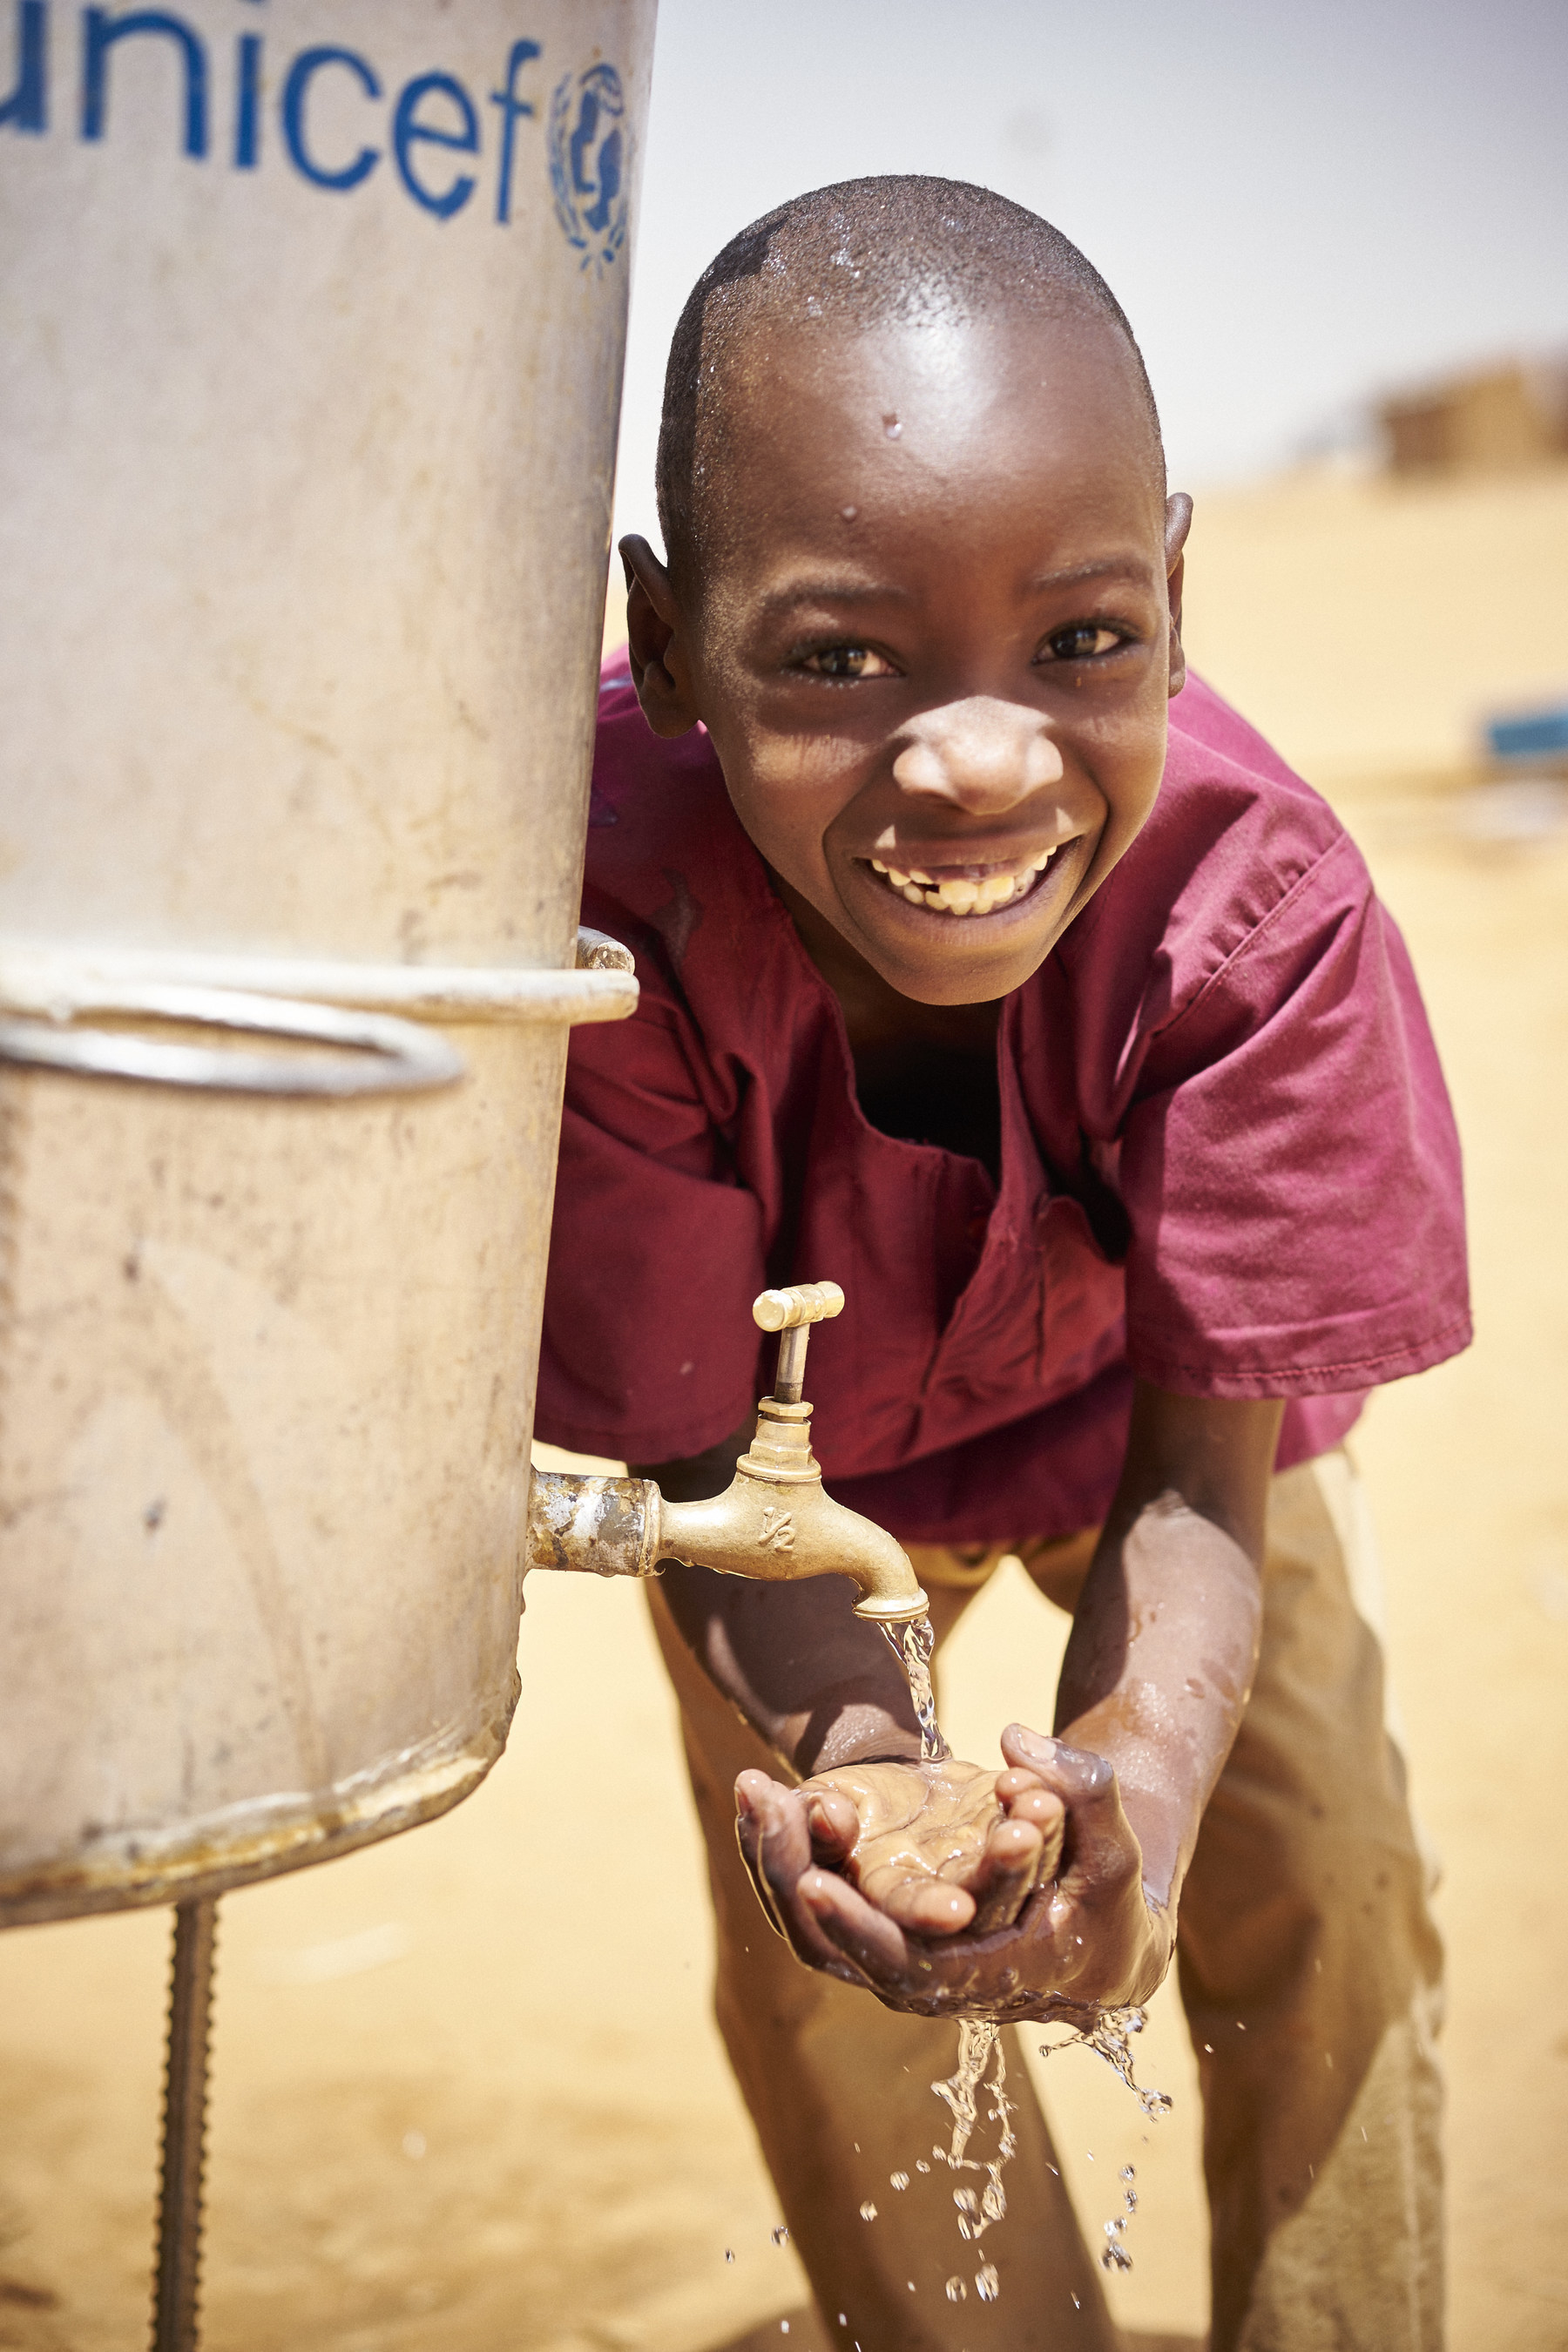 Mohamed Alhoussein, 7 years old, washes his hands outside of his classroom at the Tabareybarey refugee camp,Tillaberi region, Niger. (C) UNICEF/UNI201289/Phelps